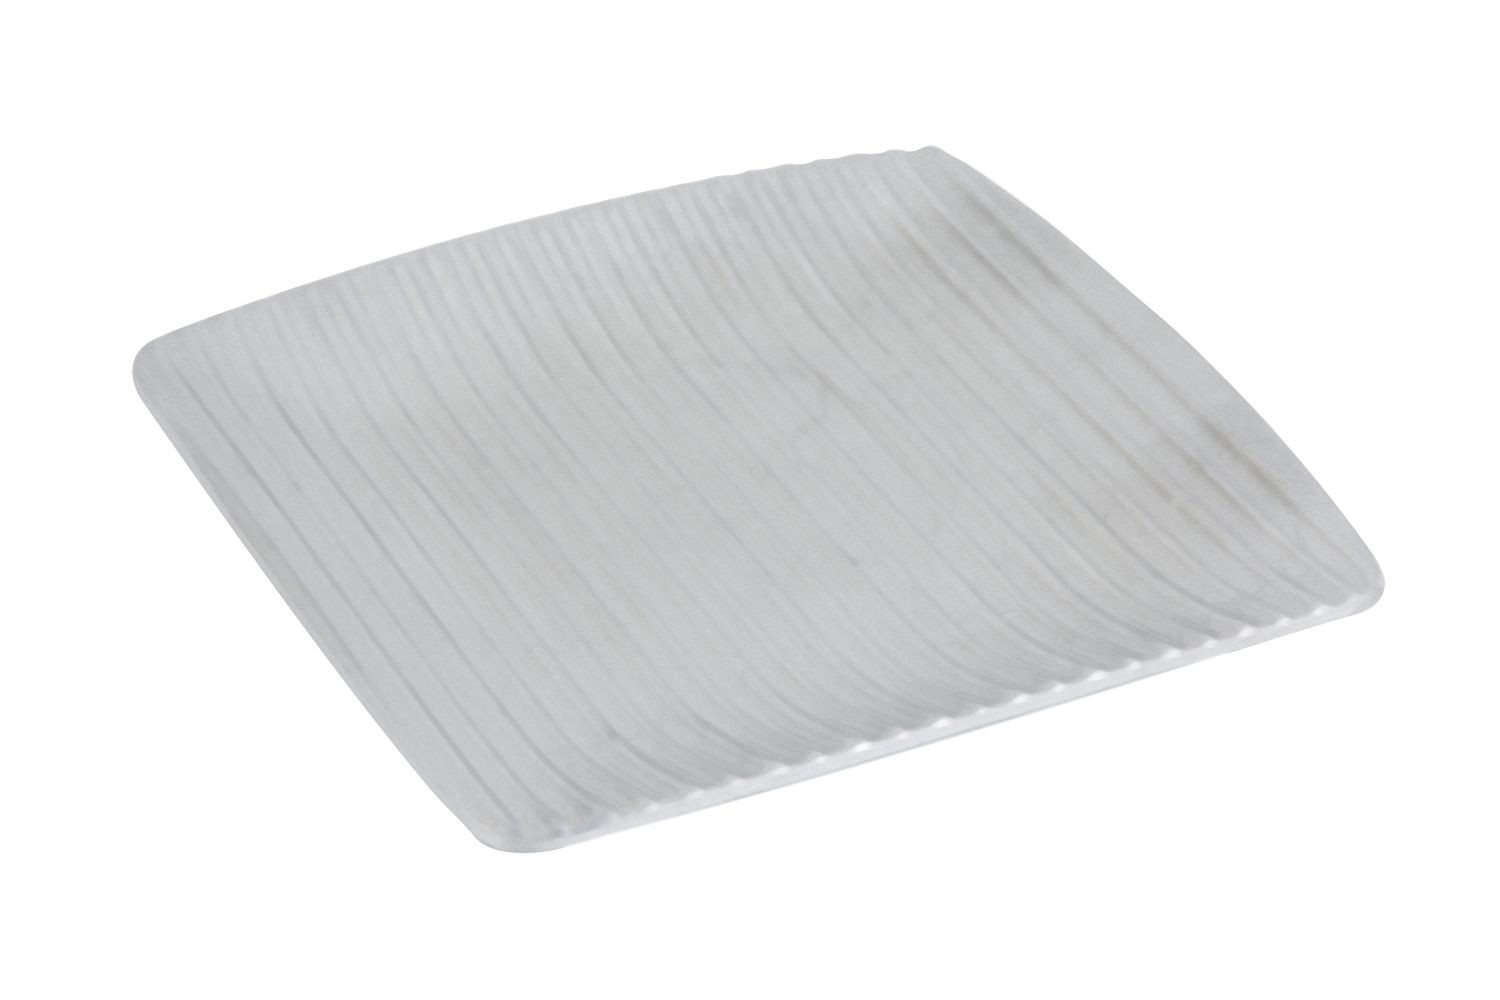 "Bon Chef 9918P Ribbed Square Platter, Pewter Glo 10"" x 10"", Set of 4"